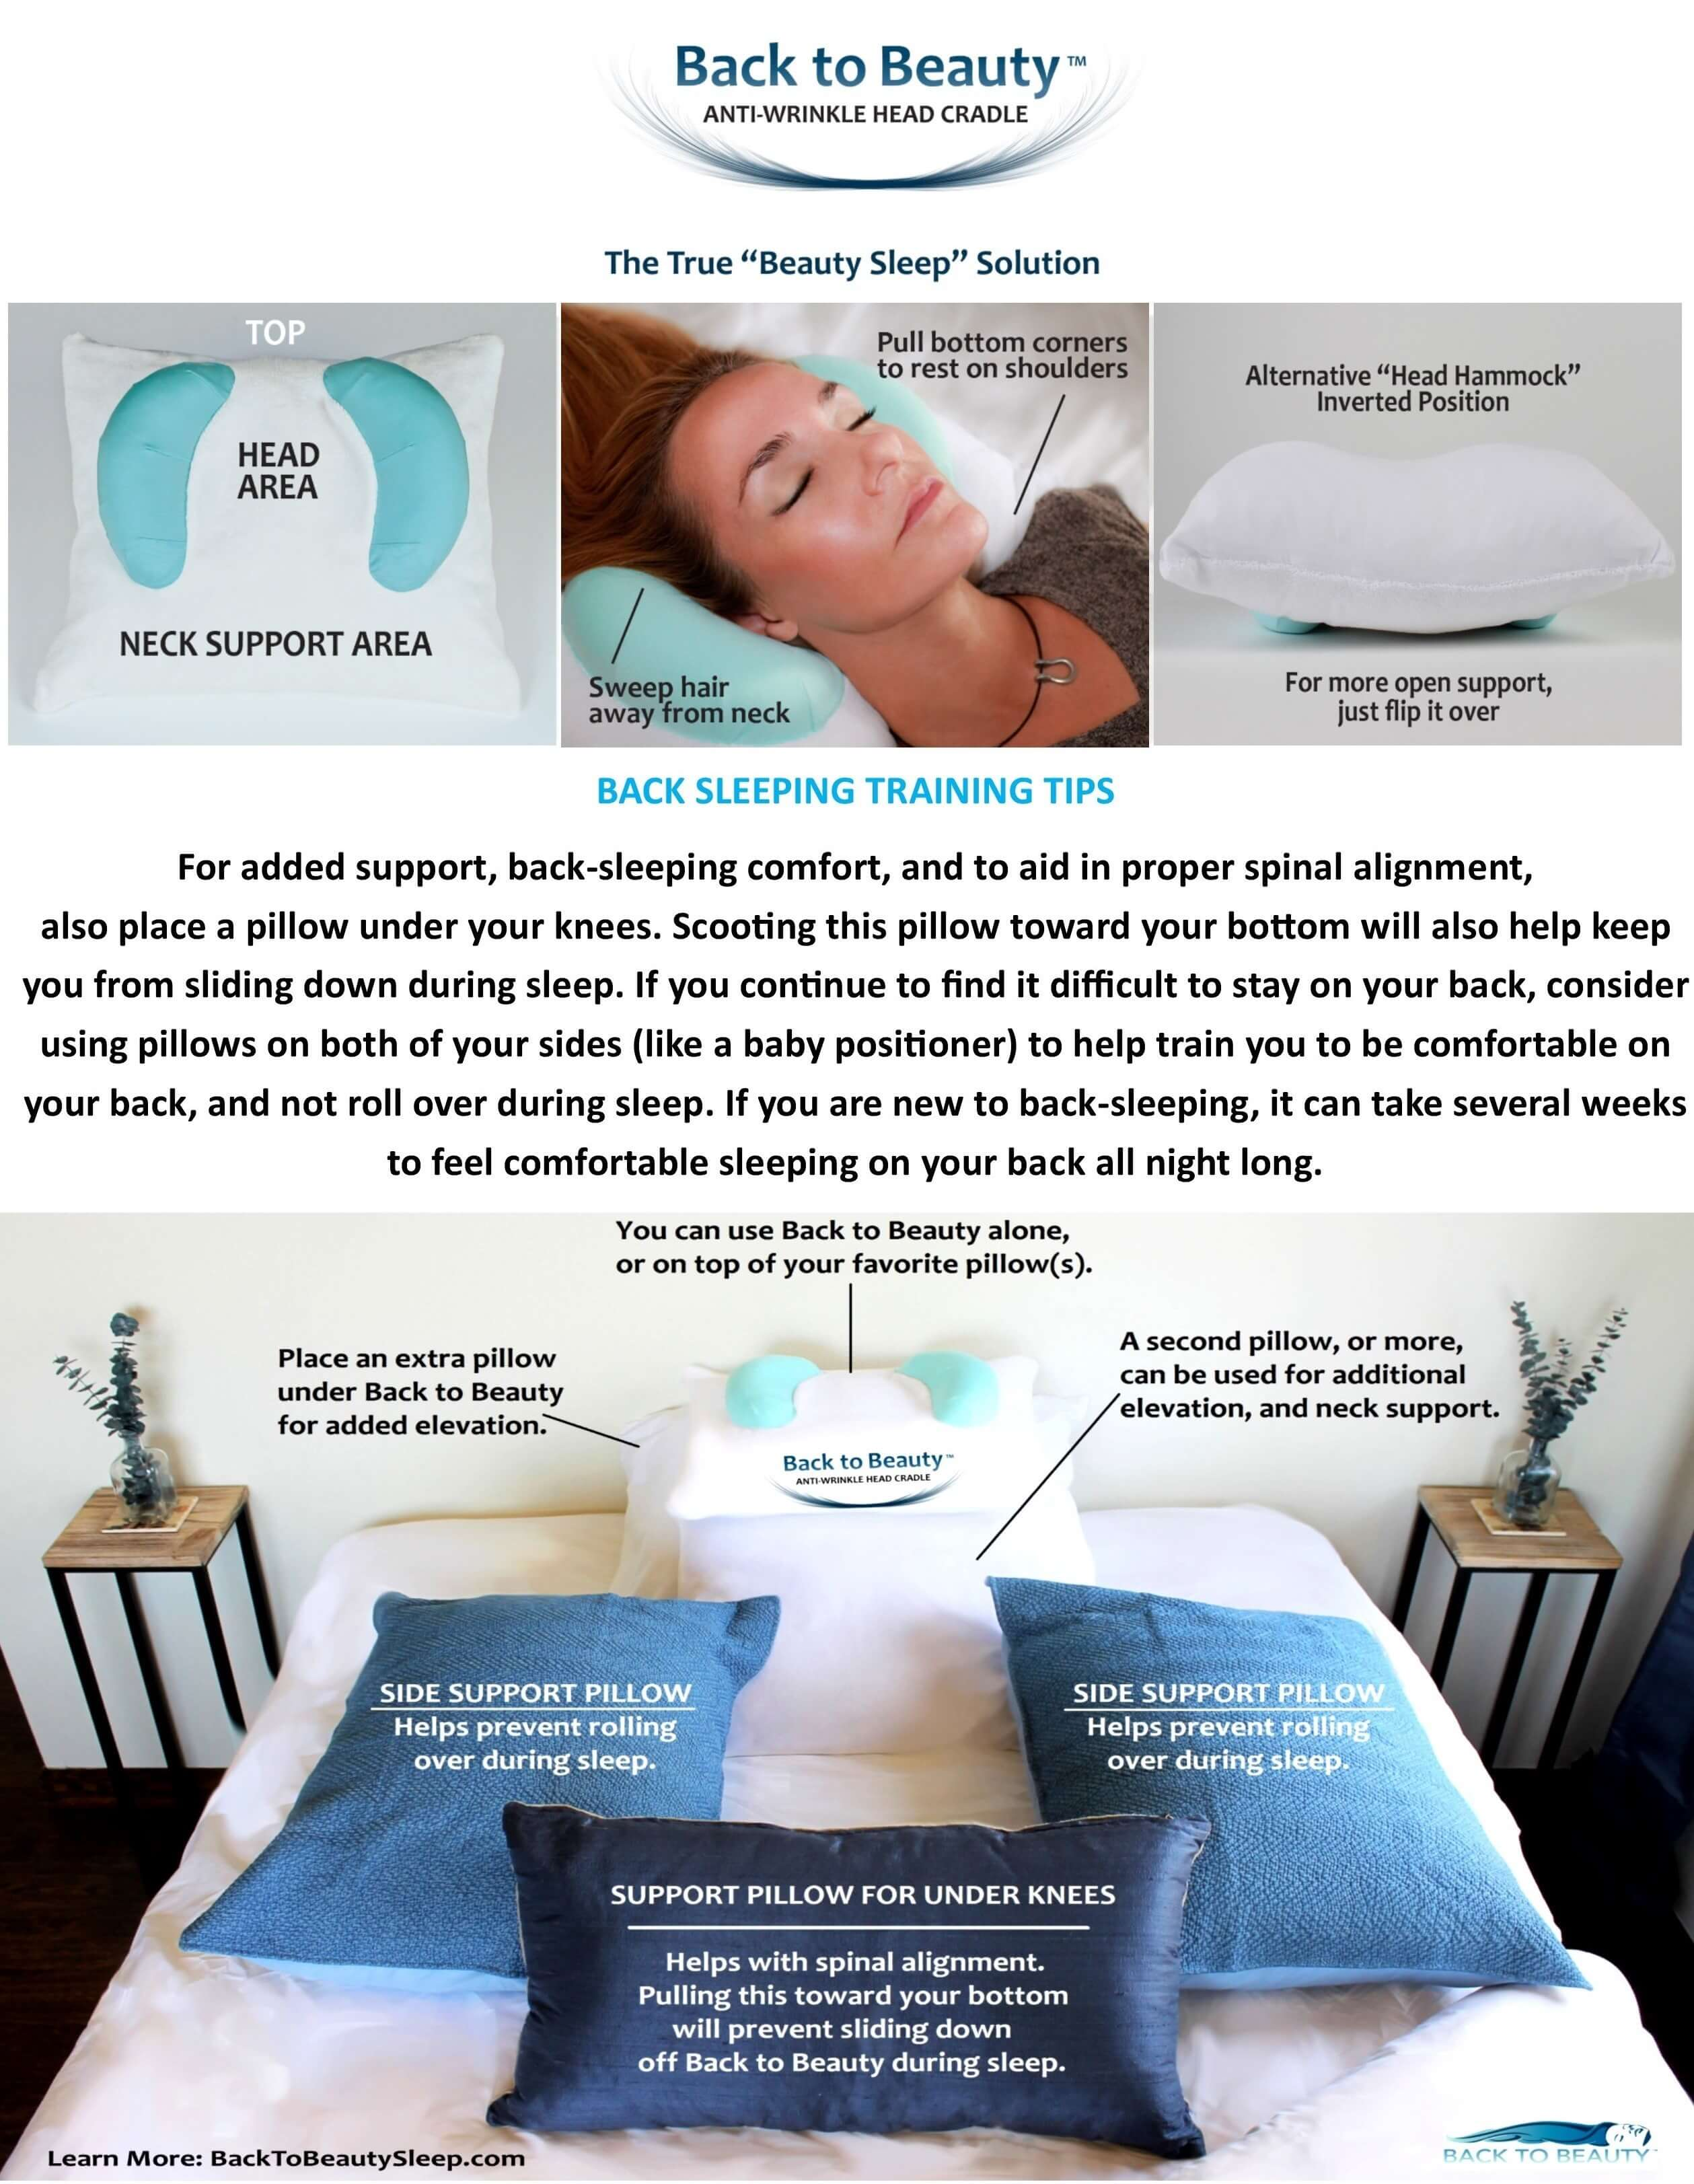 BackToBeautySleep.com